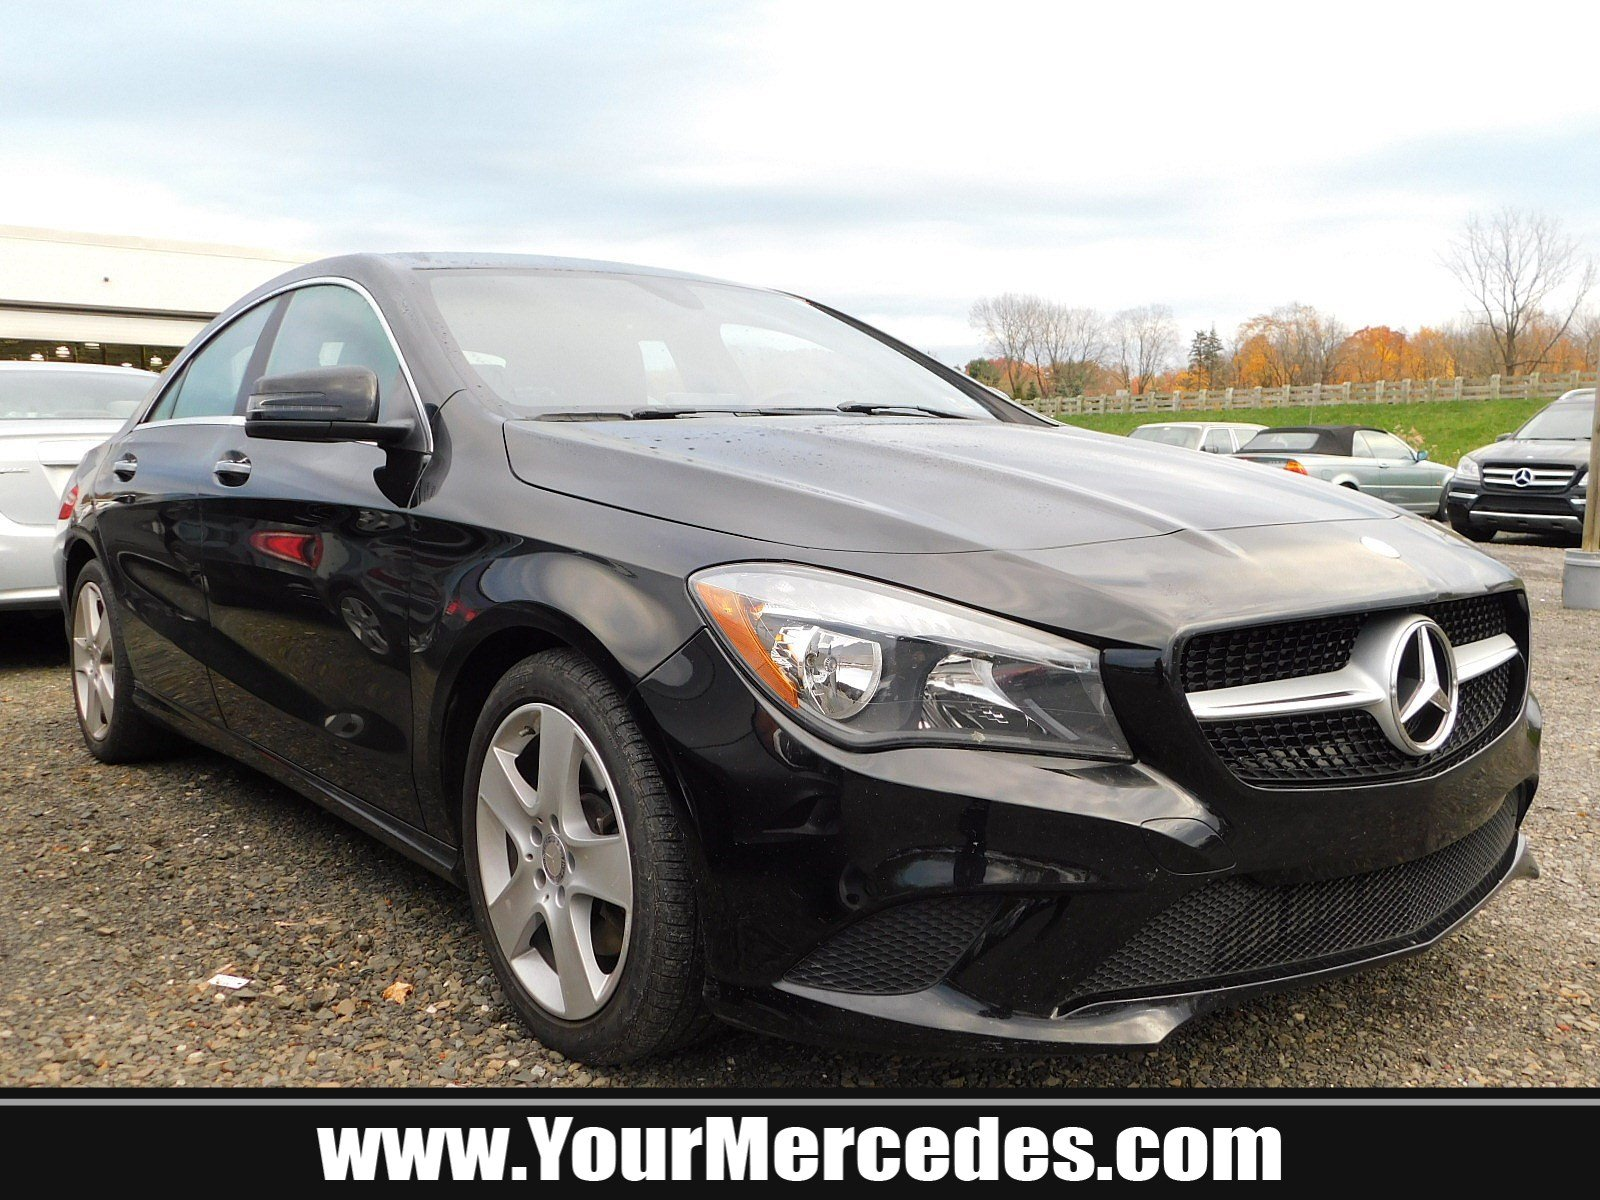 Pre Owned 2015 Mercedes Benz CLA CLA 250 Coupe in Fort Washington